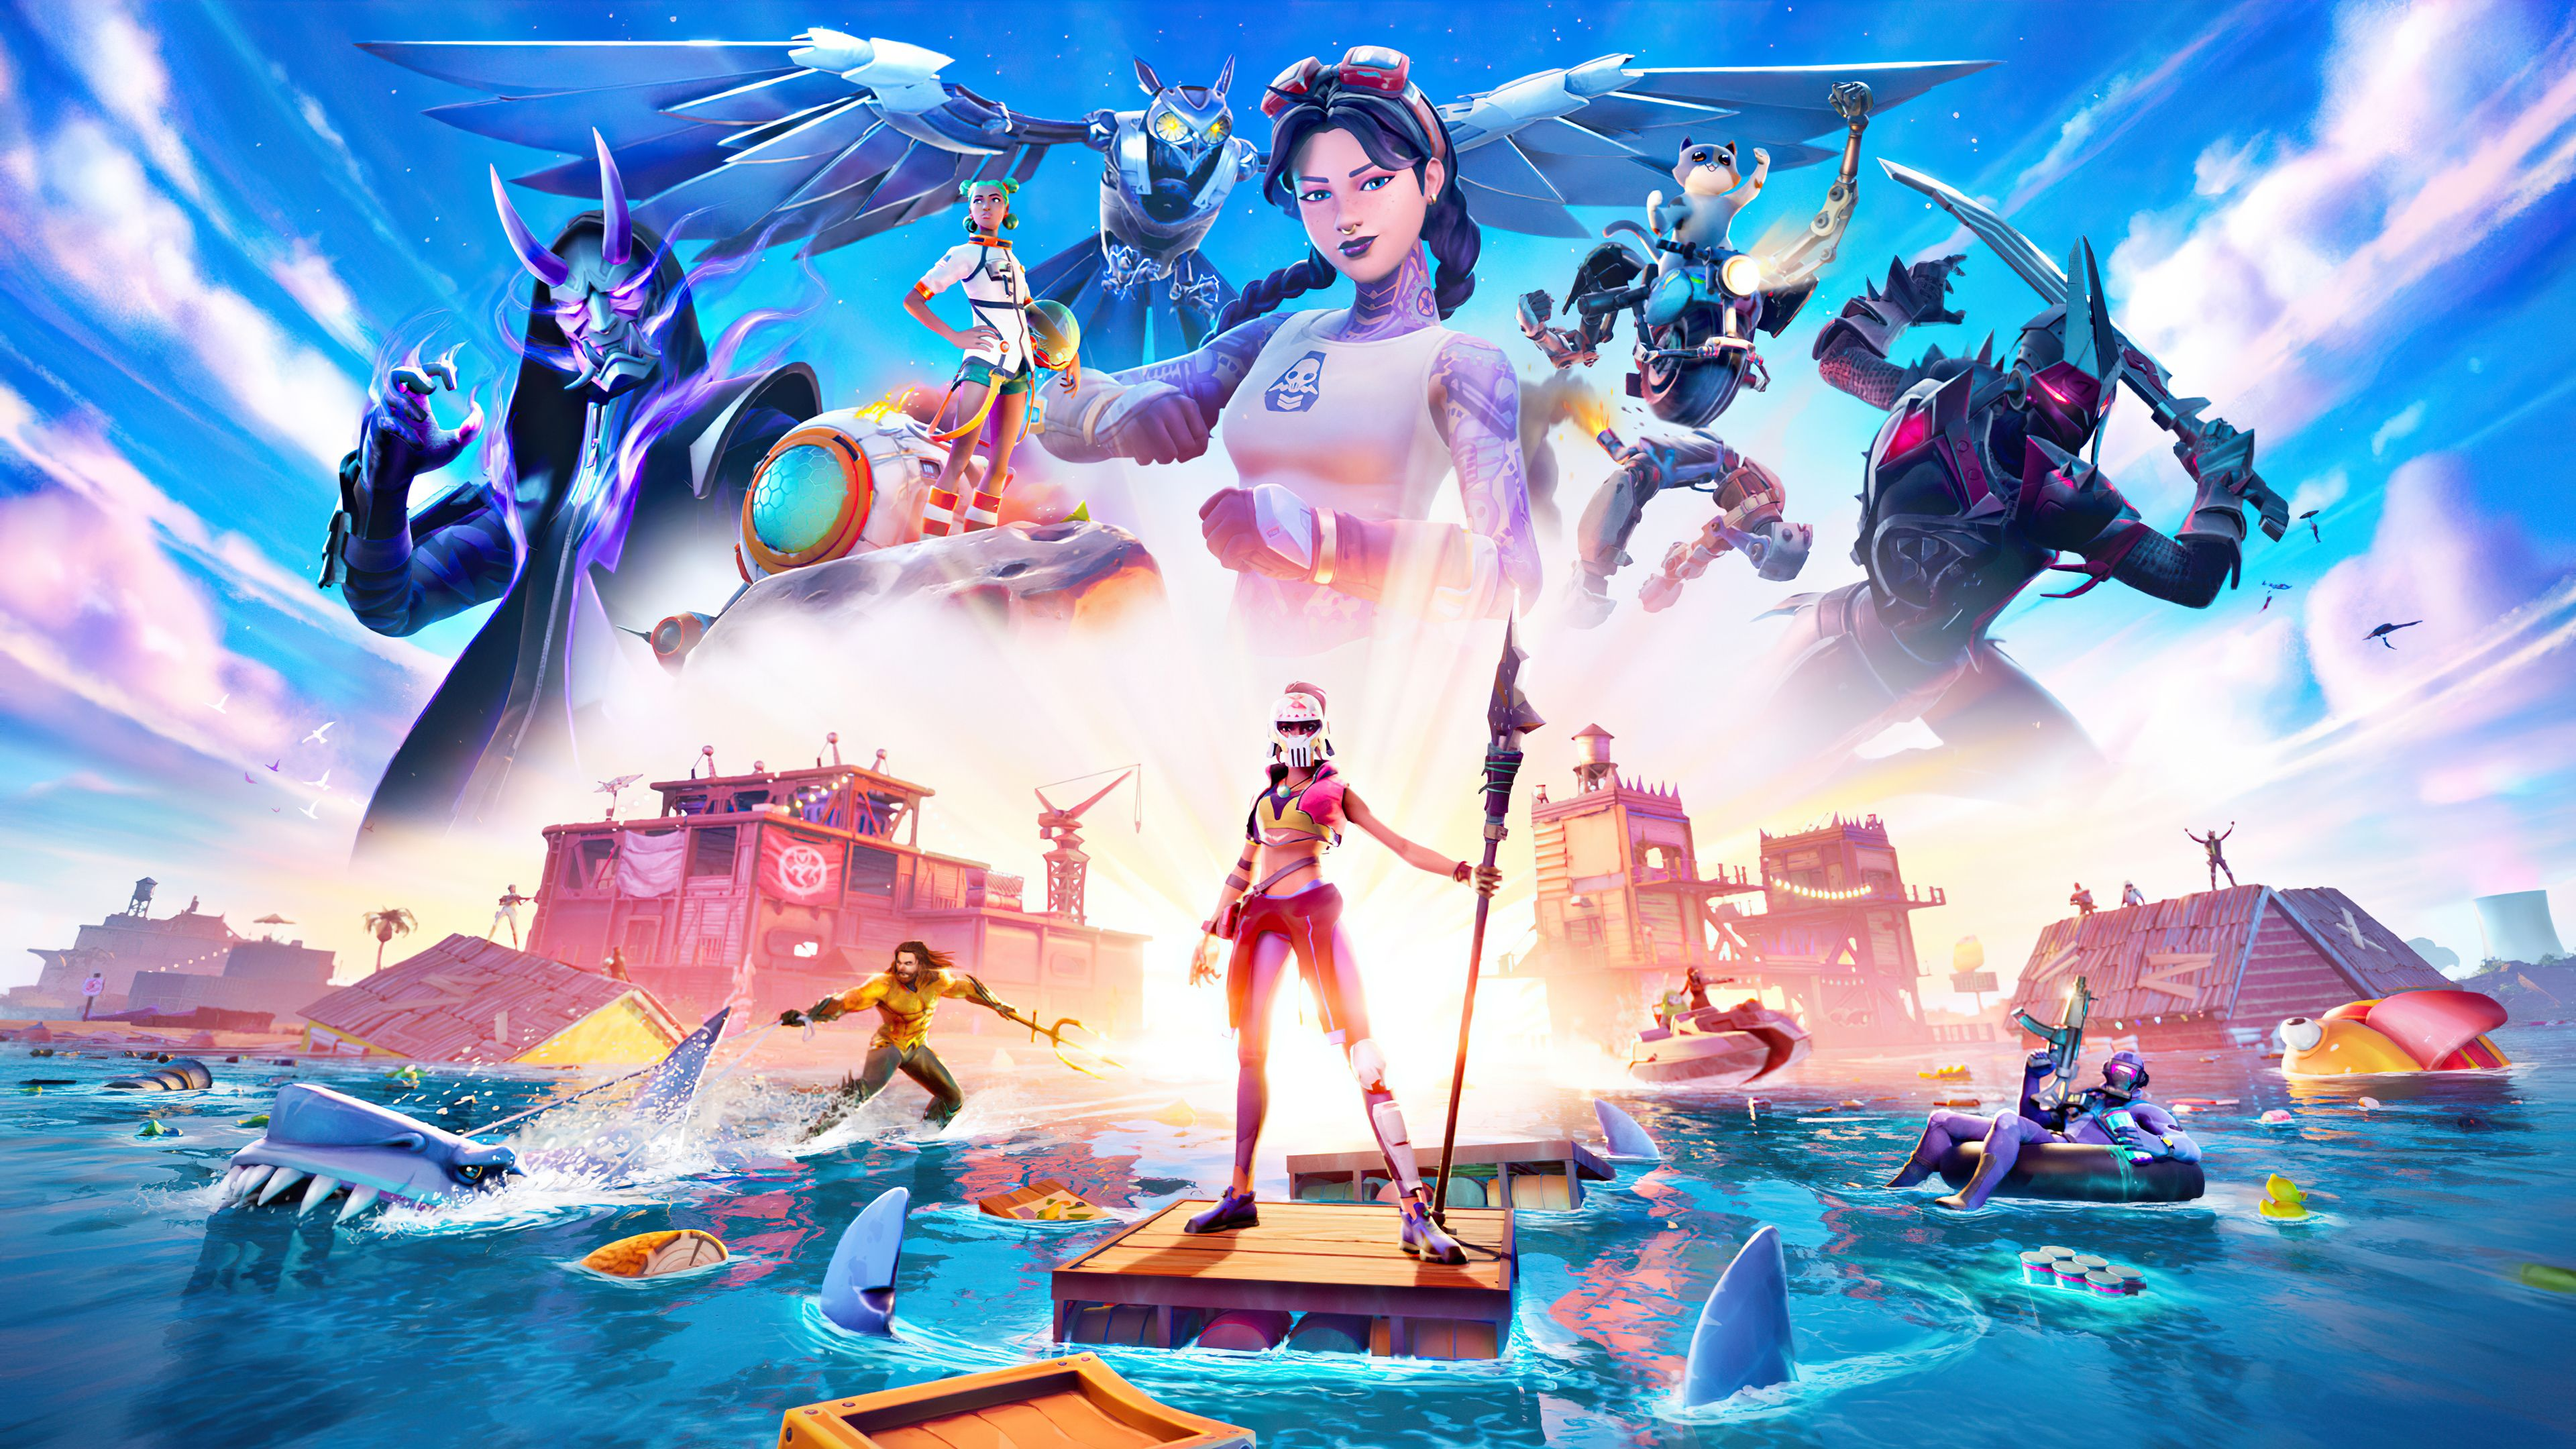 Fortnite Season 4 Chapter 2 Wallpapers Top Free Fortnite Season 4 Chapter 2 Backgrounds Wallpaperaccess